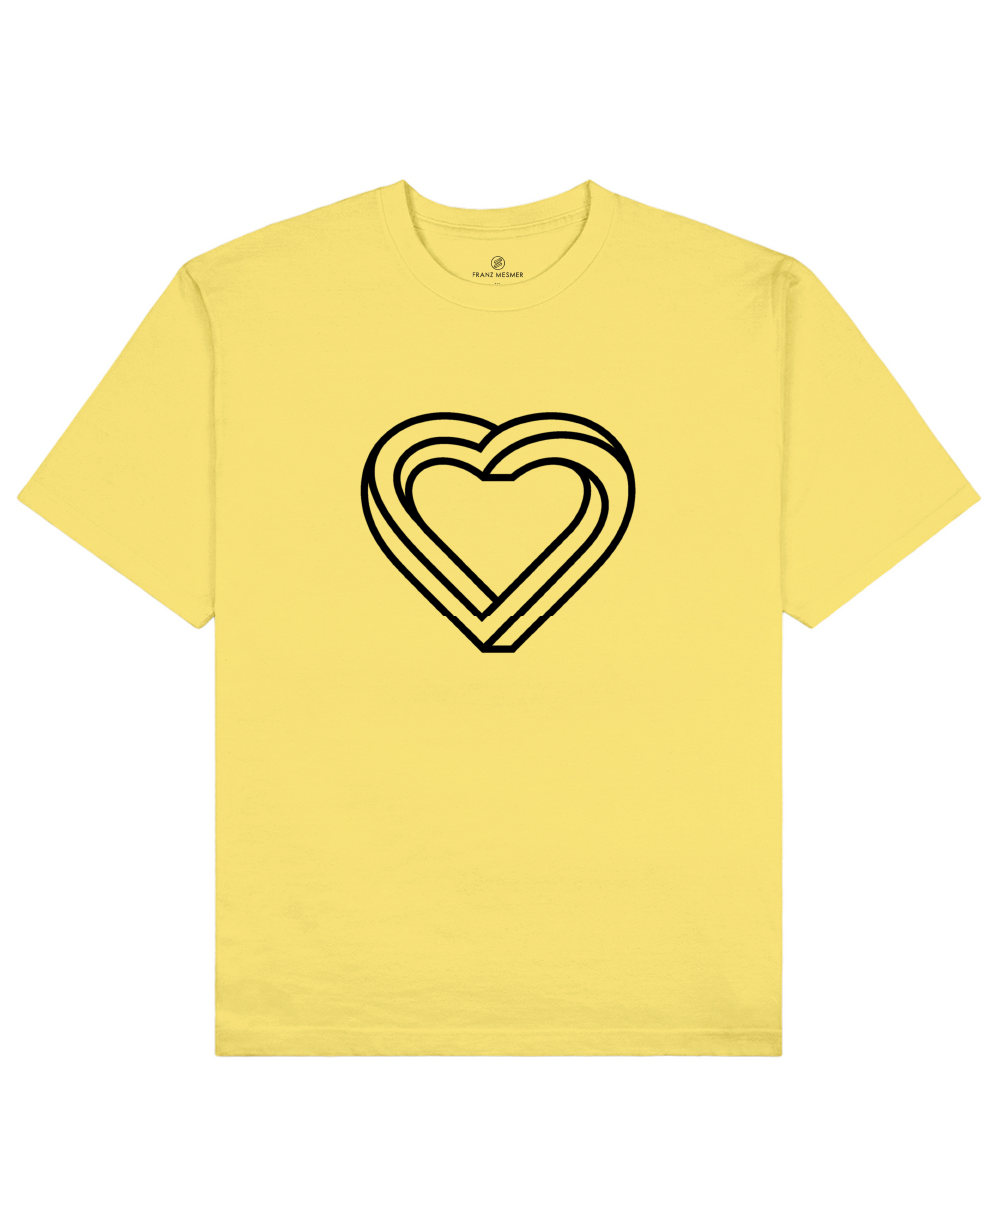 Impossible Heart Print T-Shirt in Light Yellow - T-Shirts - Franz Mesmer - BRANMA